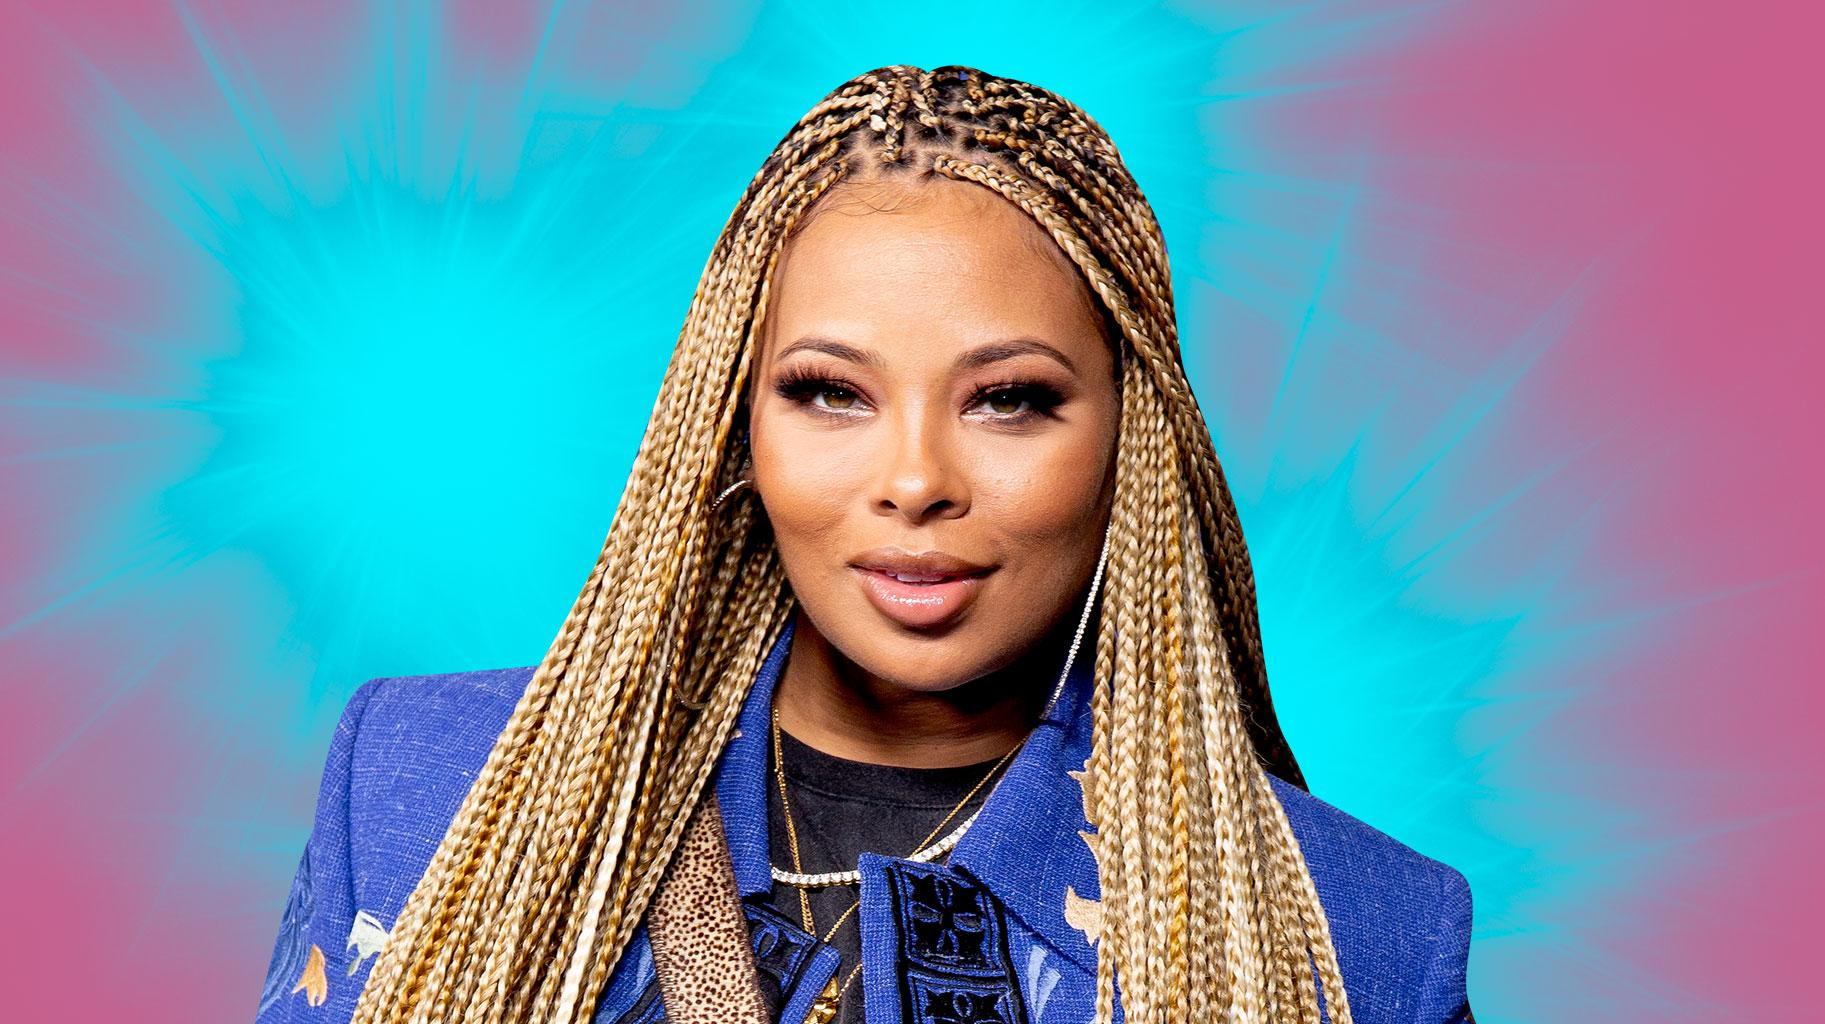 Eva Marcille's Video Featuring Marley Rae Opening Her Christmas Gift Will Make Fans Day - Check Out Her Priceless Reaction